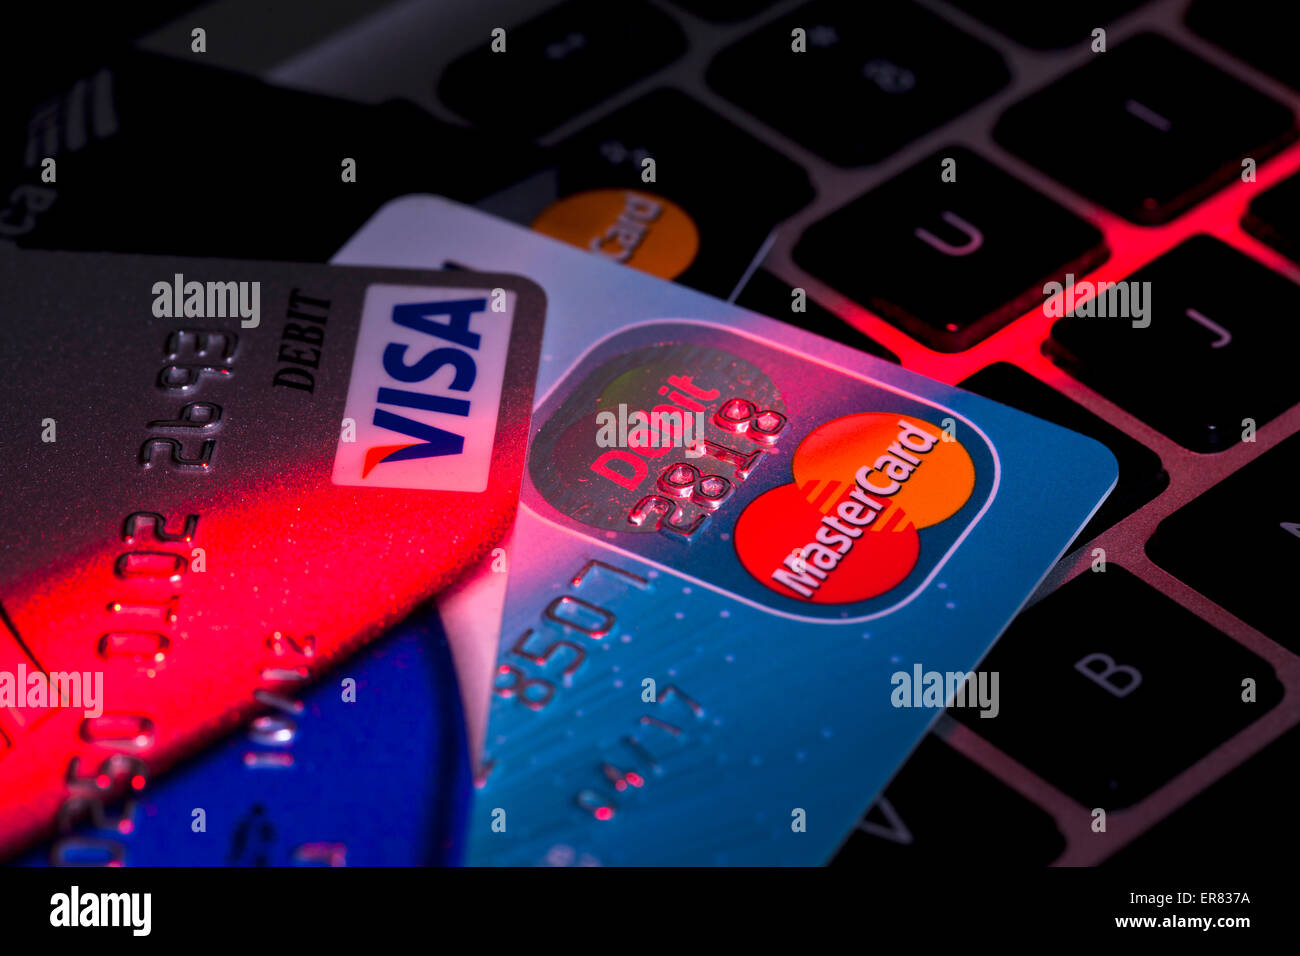 Credit card on computer keyboard - USA - Stock Image